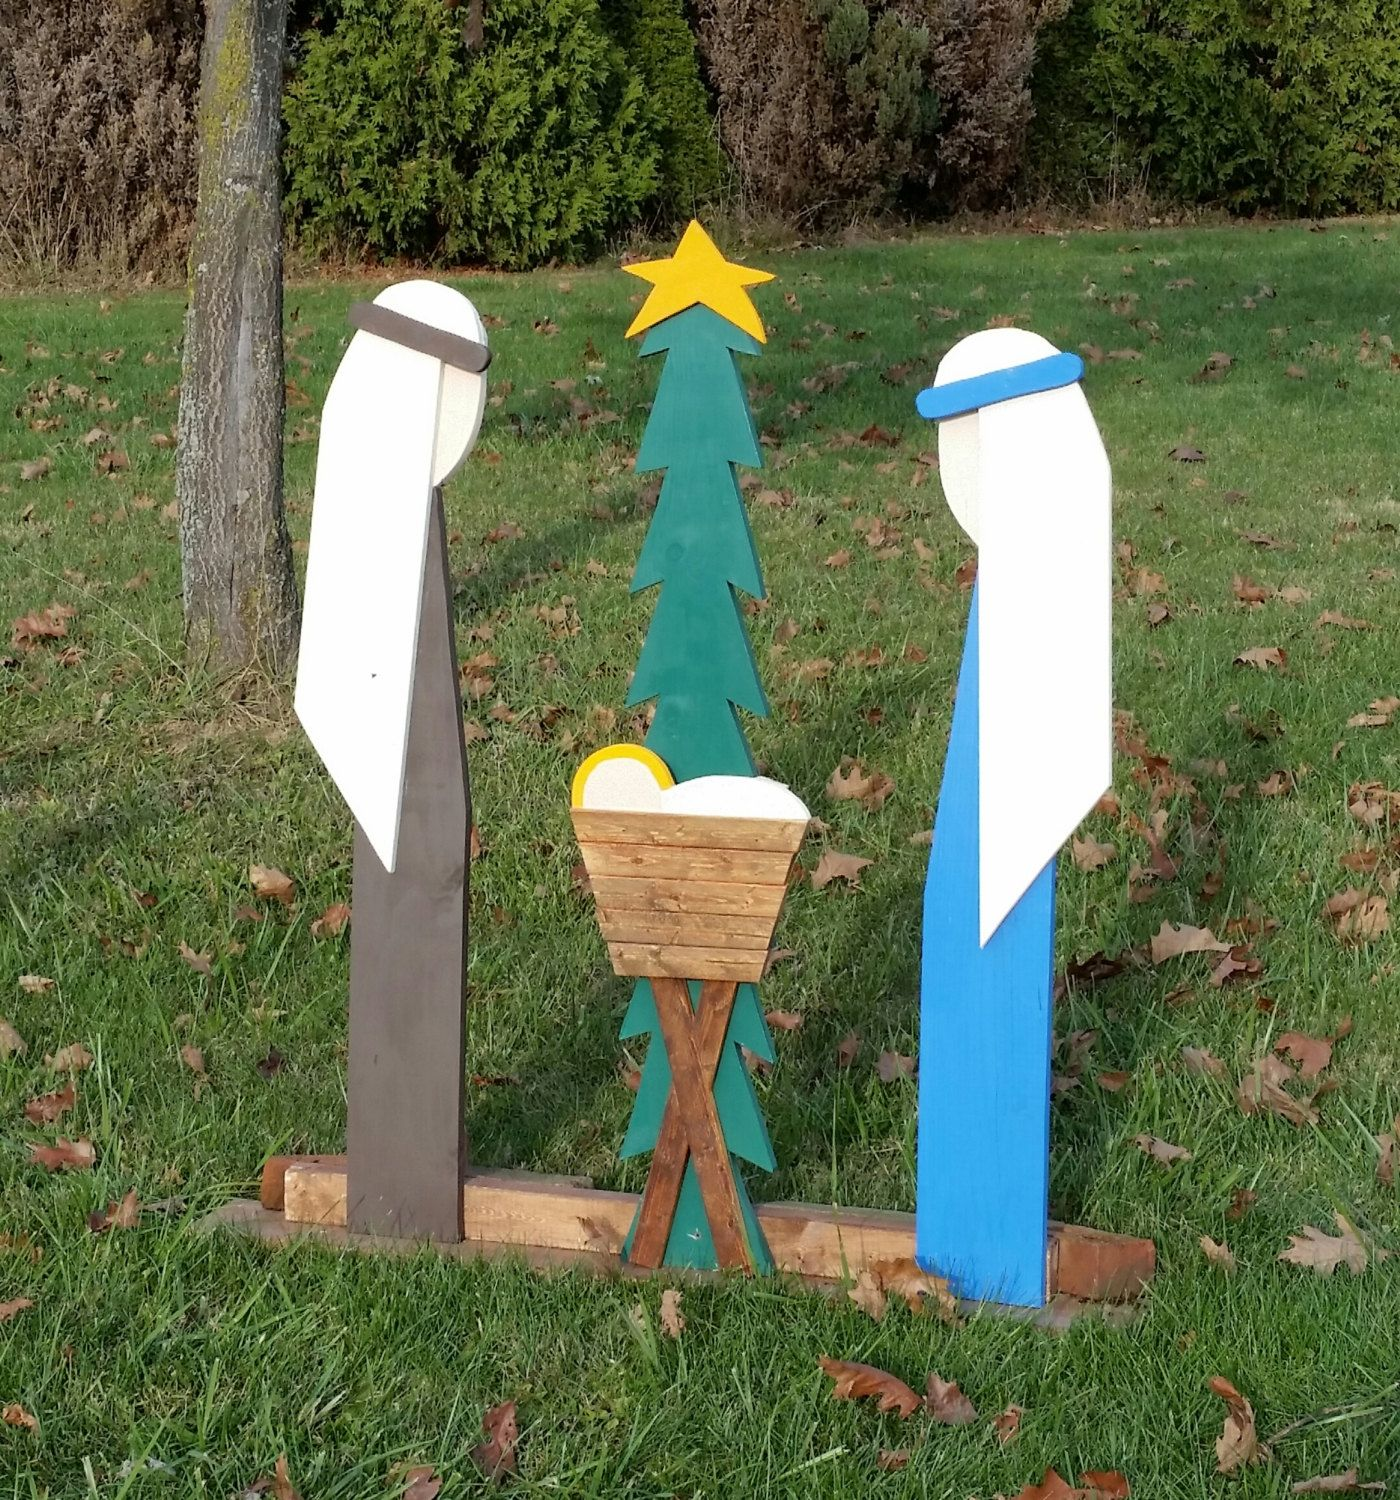 Outdoor Christmas Decorations Nativity Set Outdoor Wooden Etsy Outdoor Christmas Outdoor Christmas Decorations Christmas Decorations